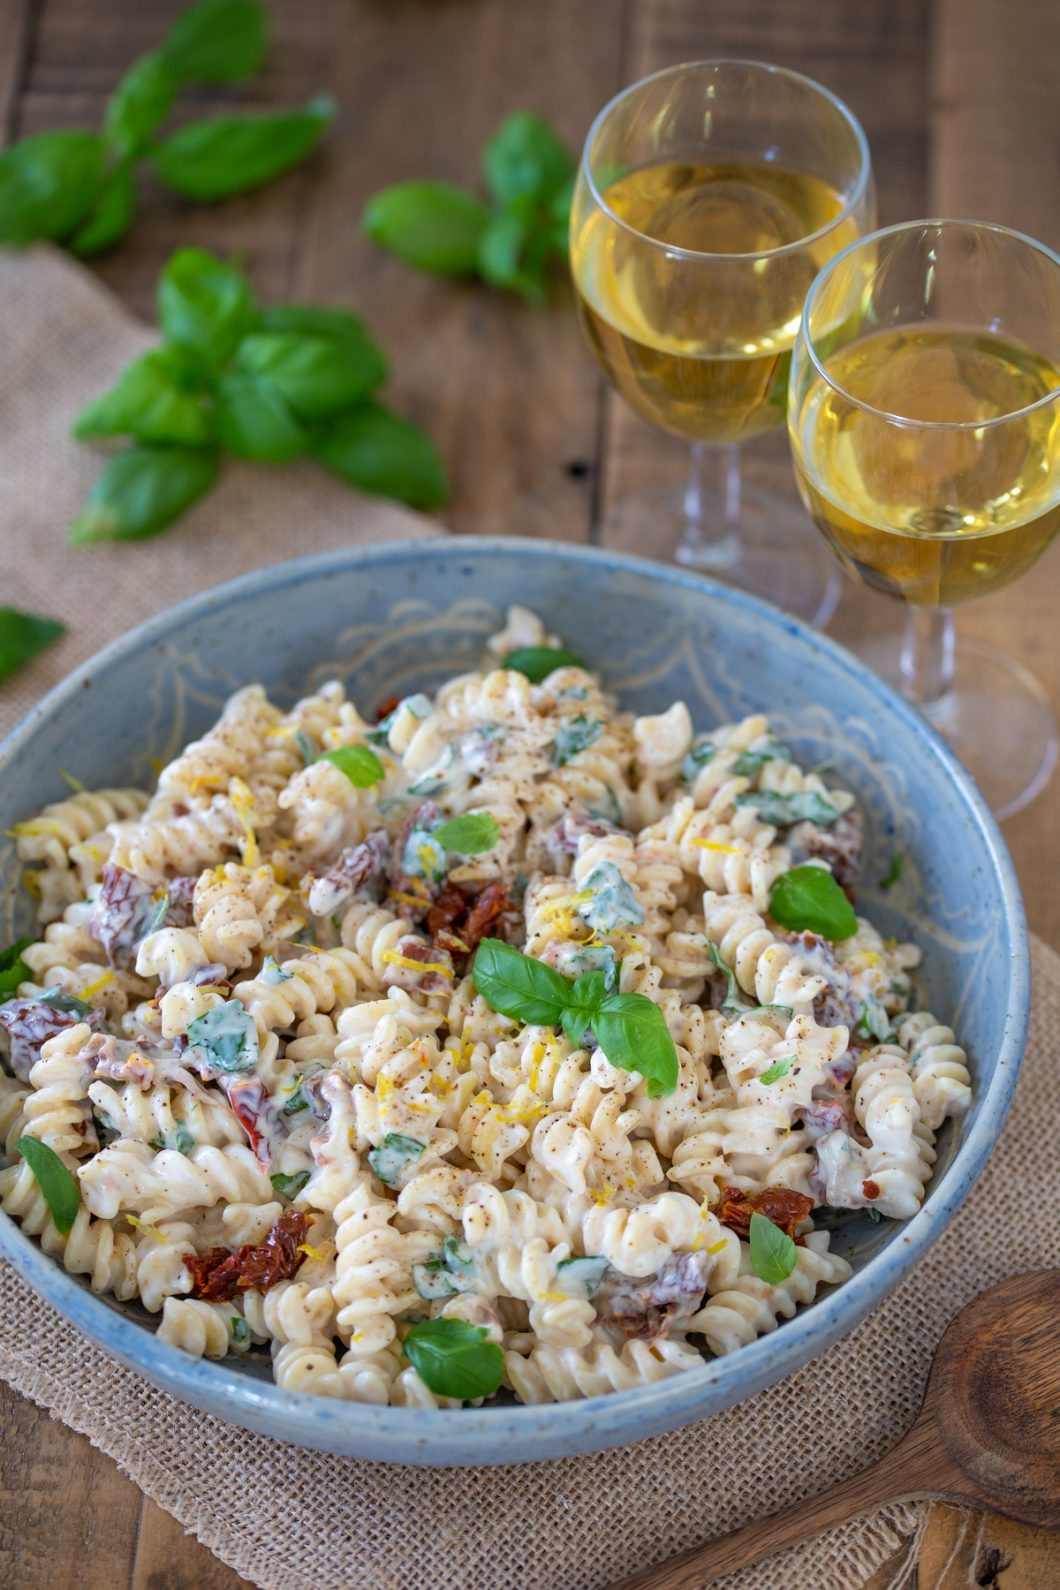 This creamy ricotta pasta salad in a serving bowl.